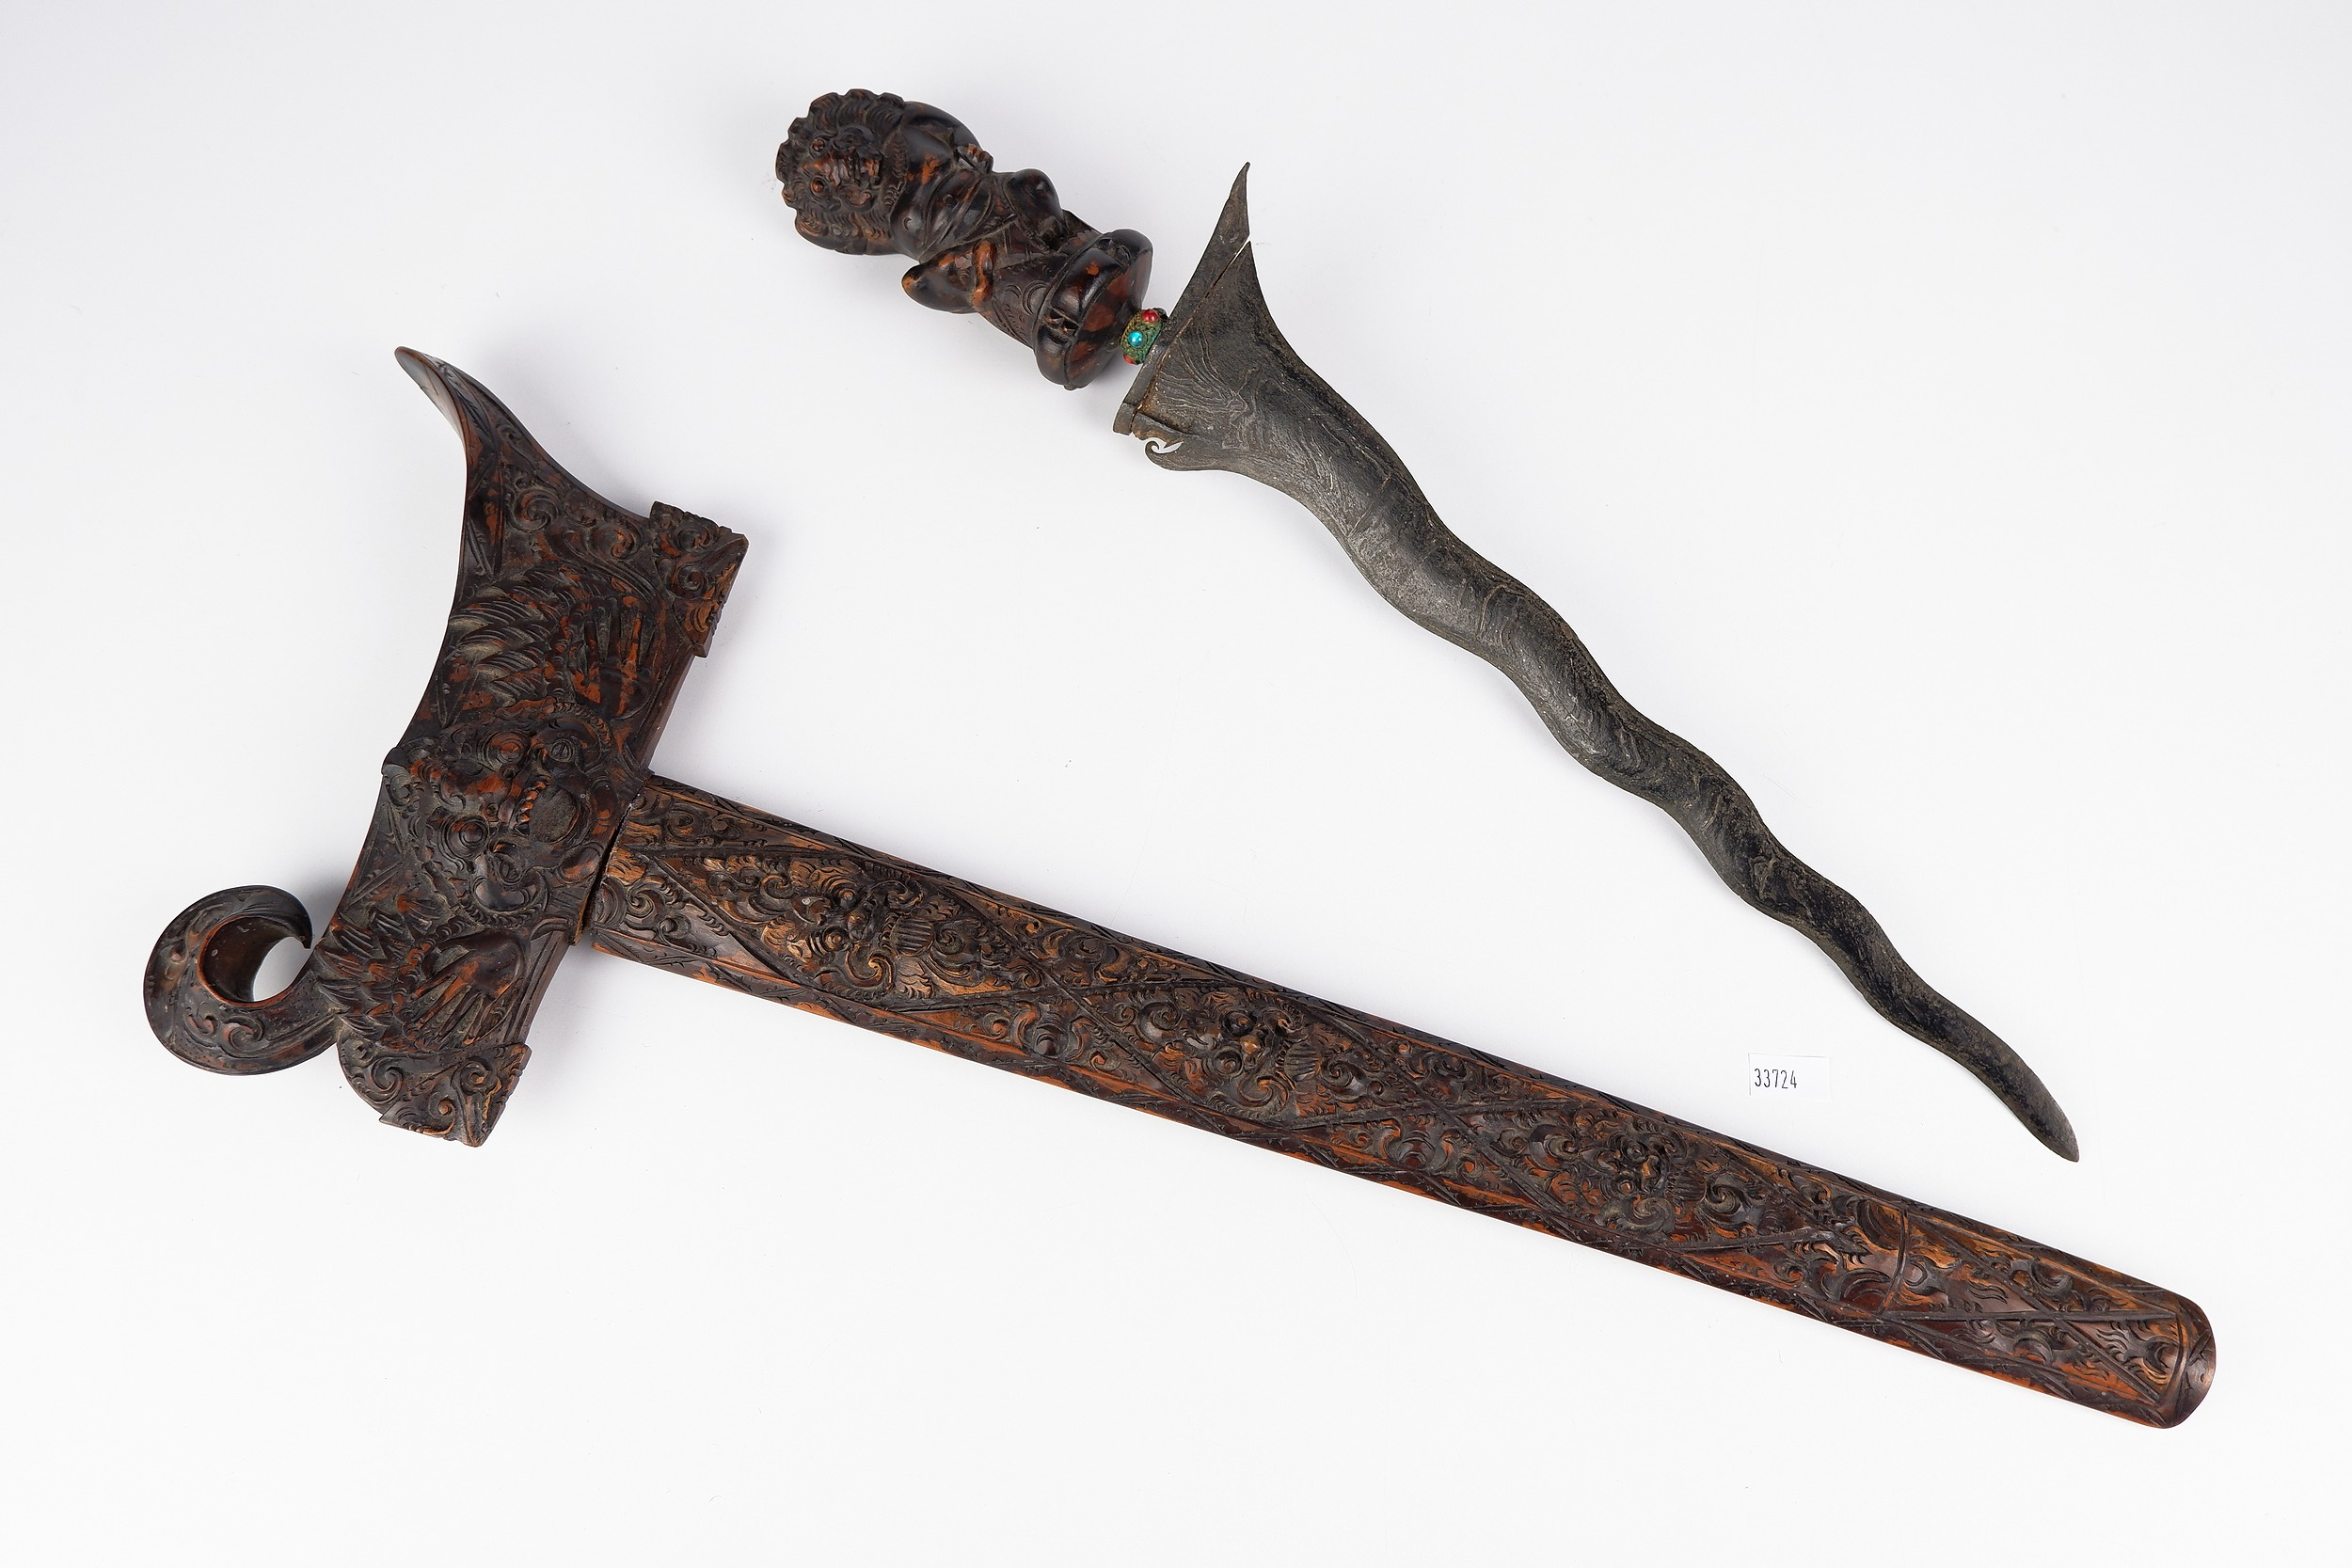 'Indonesian Kris with an Antique Laminated Nickel Iron Blade'